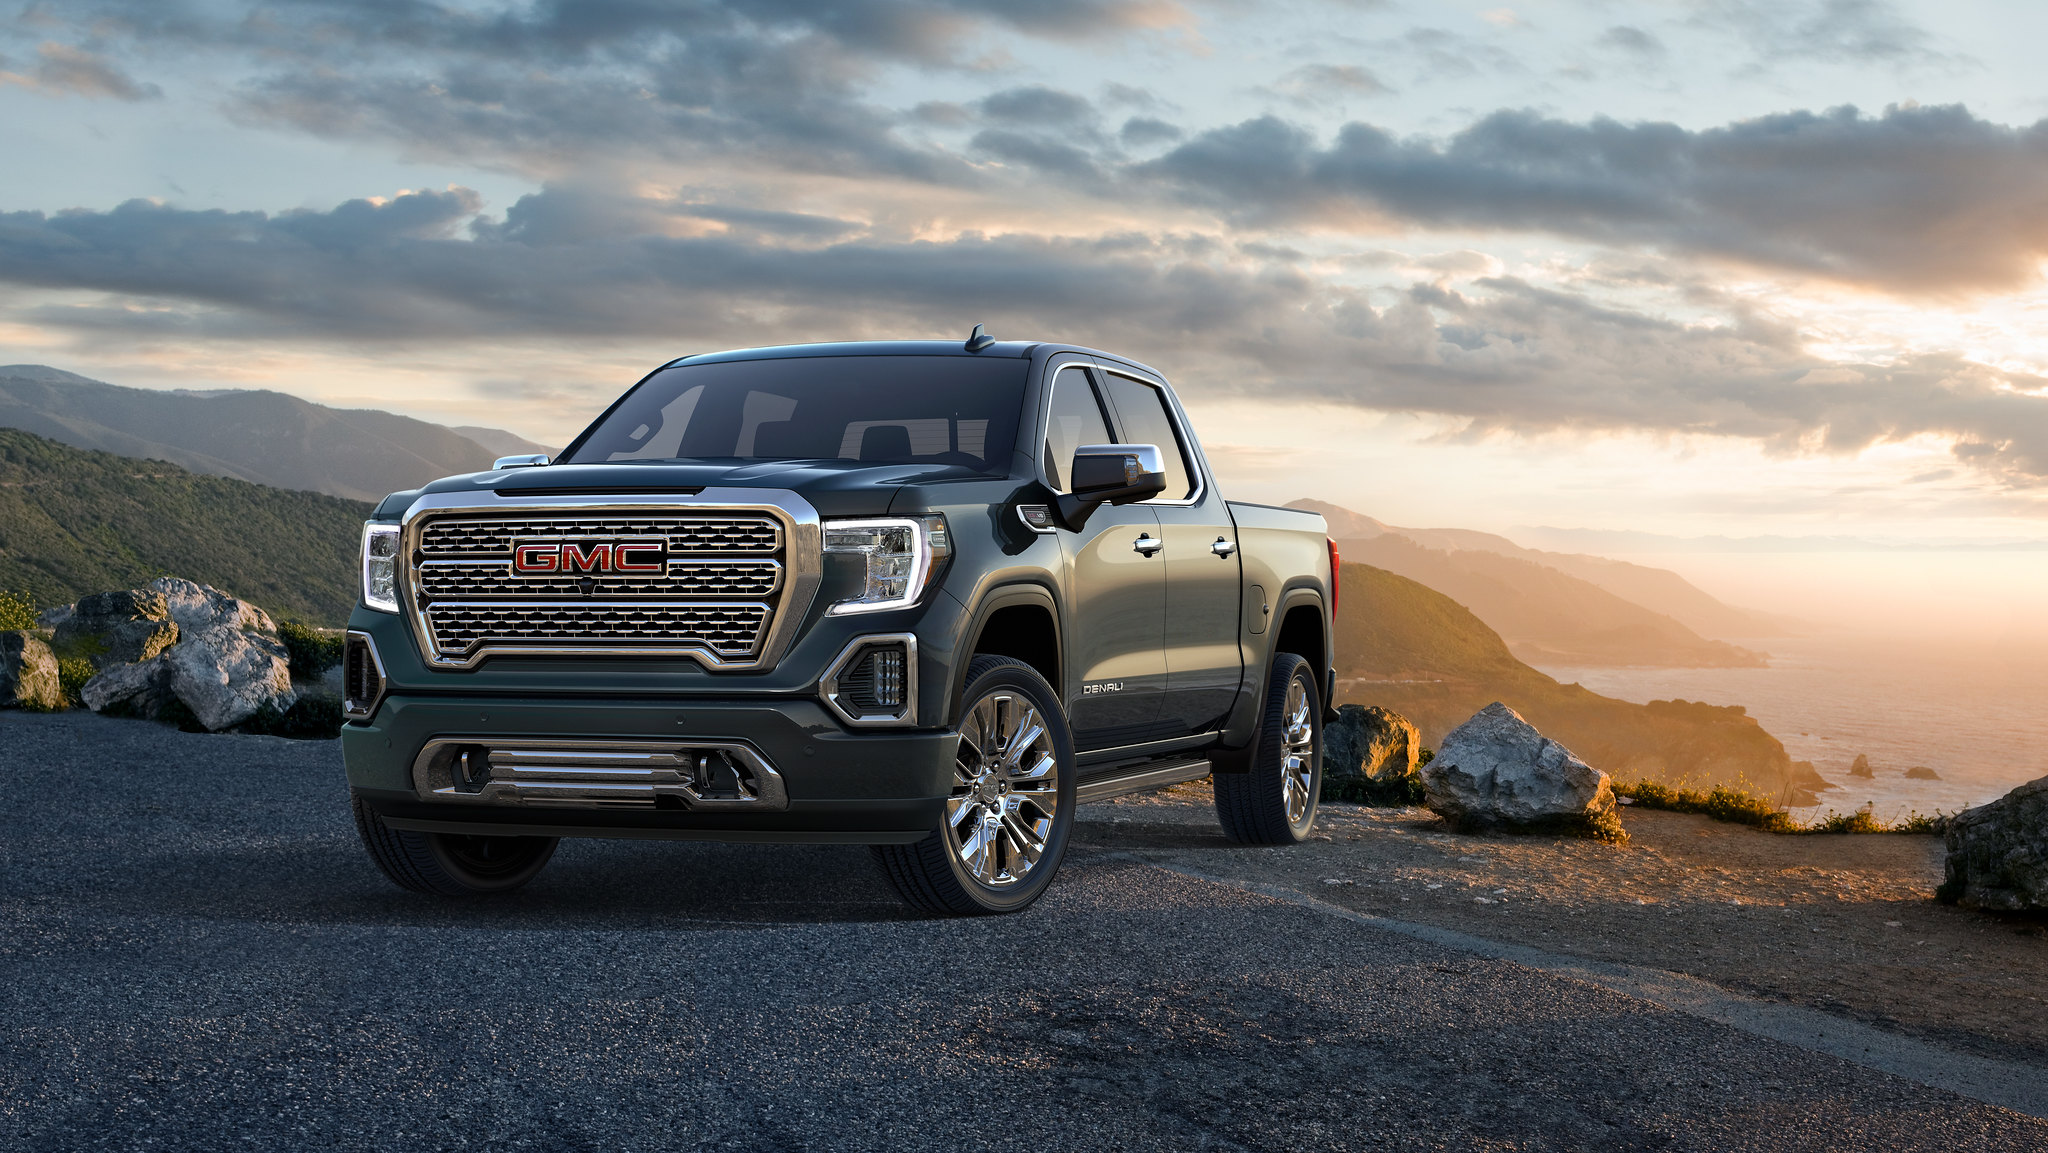 This is the 2019 GMC Sierra